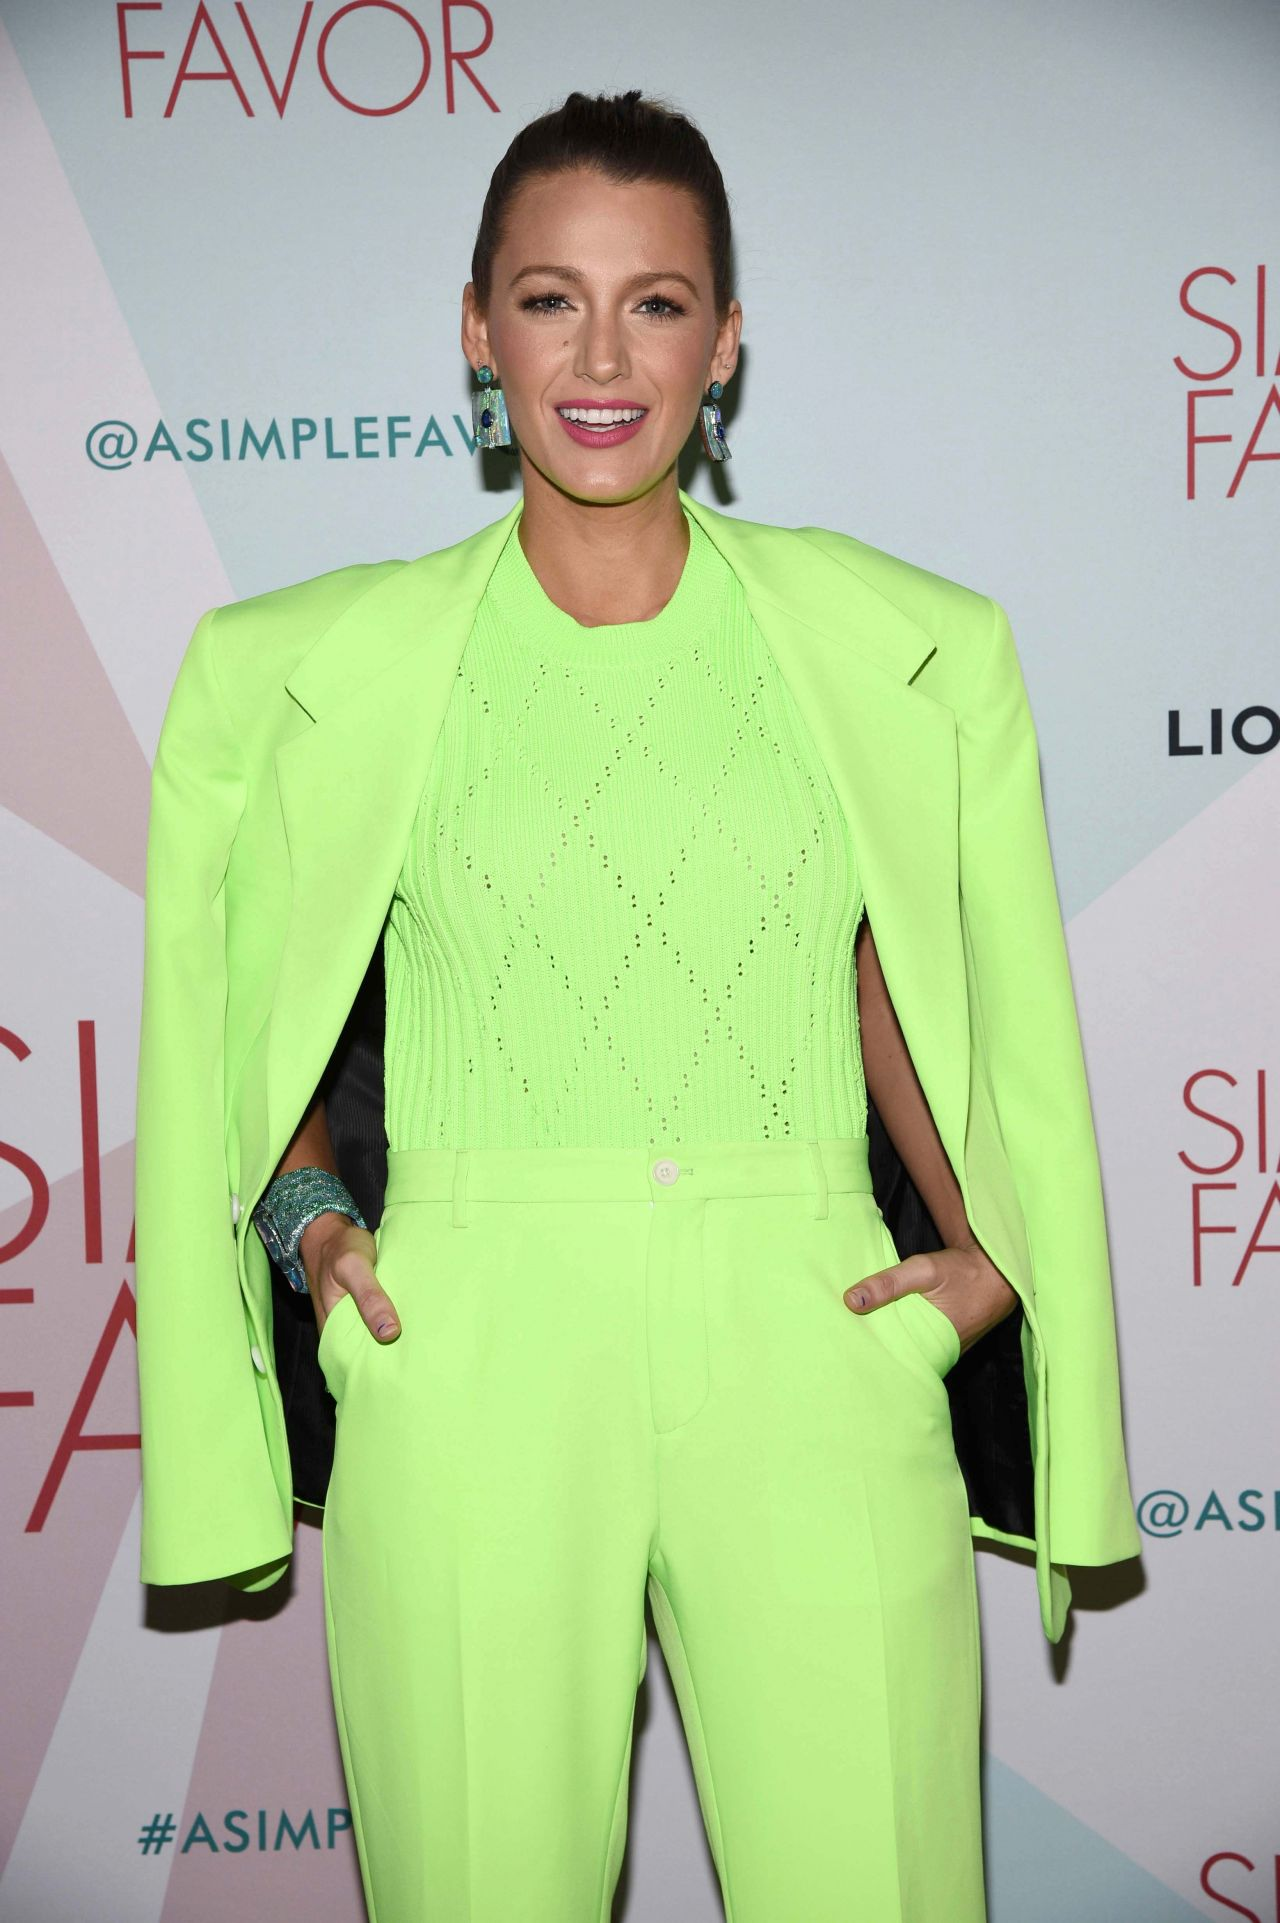 blake lively a simple favor cocktail party in new york. Black Bedroom Furniture Sets. Home Design Ideas